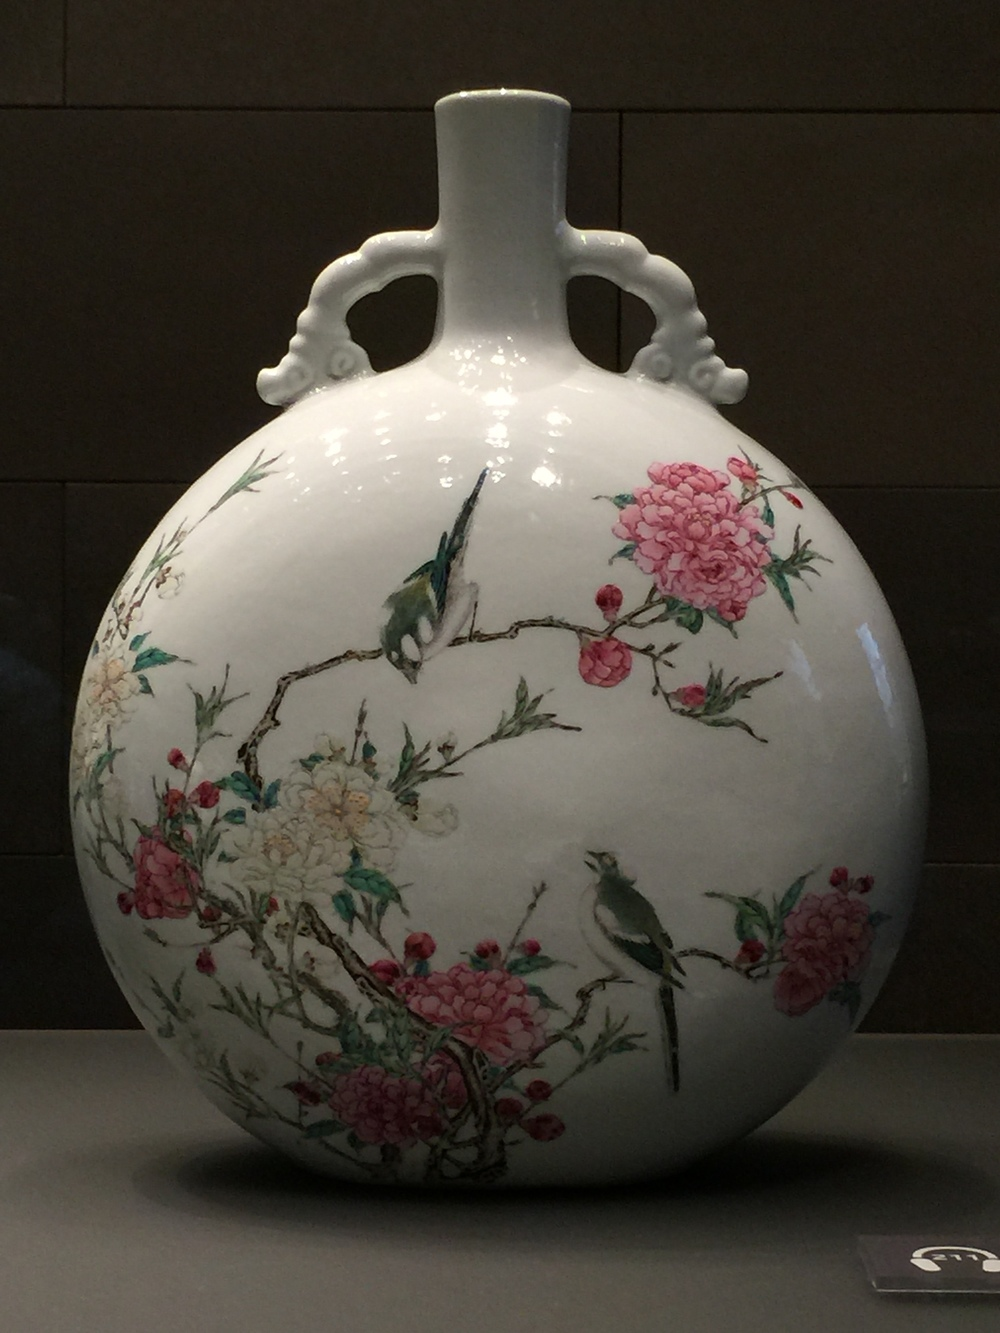 Chinese-Porcelain-British-Museum-Percival-David-jessewaugh.com-107.jpg